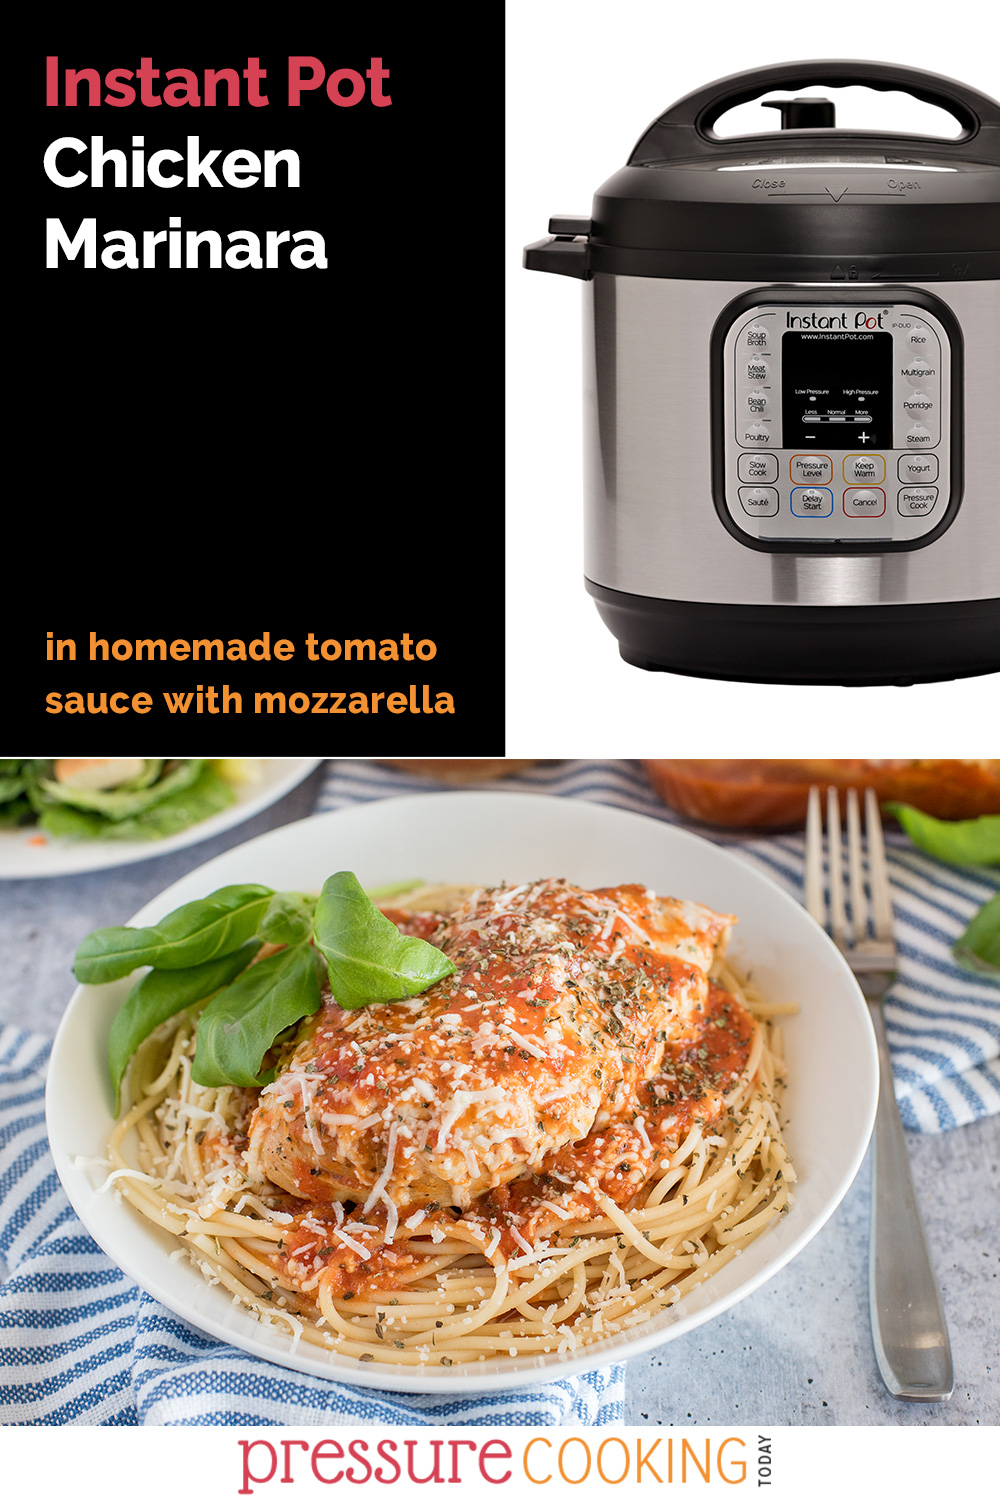 Homemade tomato sauce + melty mozzarella + quick chicken dinner = THIS WEEK'S DINNER! Instructions to melt cheese with an air fryer lid or in the oven. via @PressureCook2da